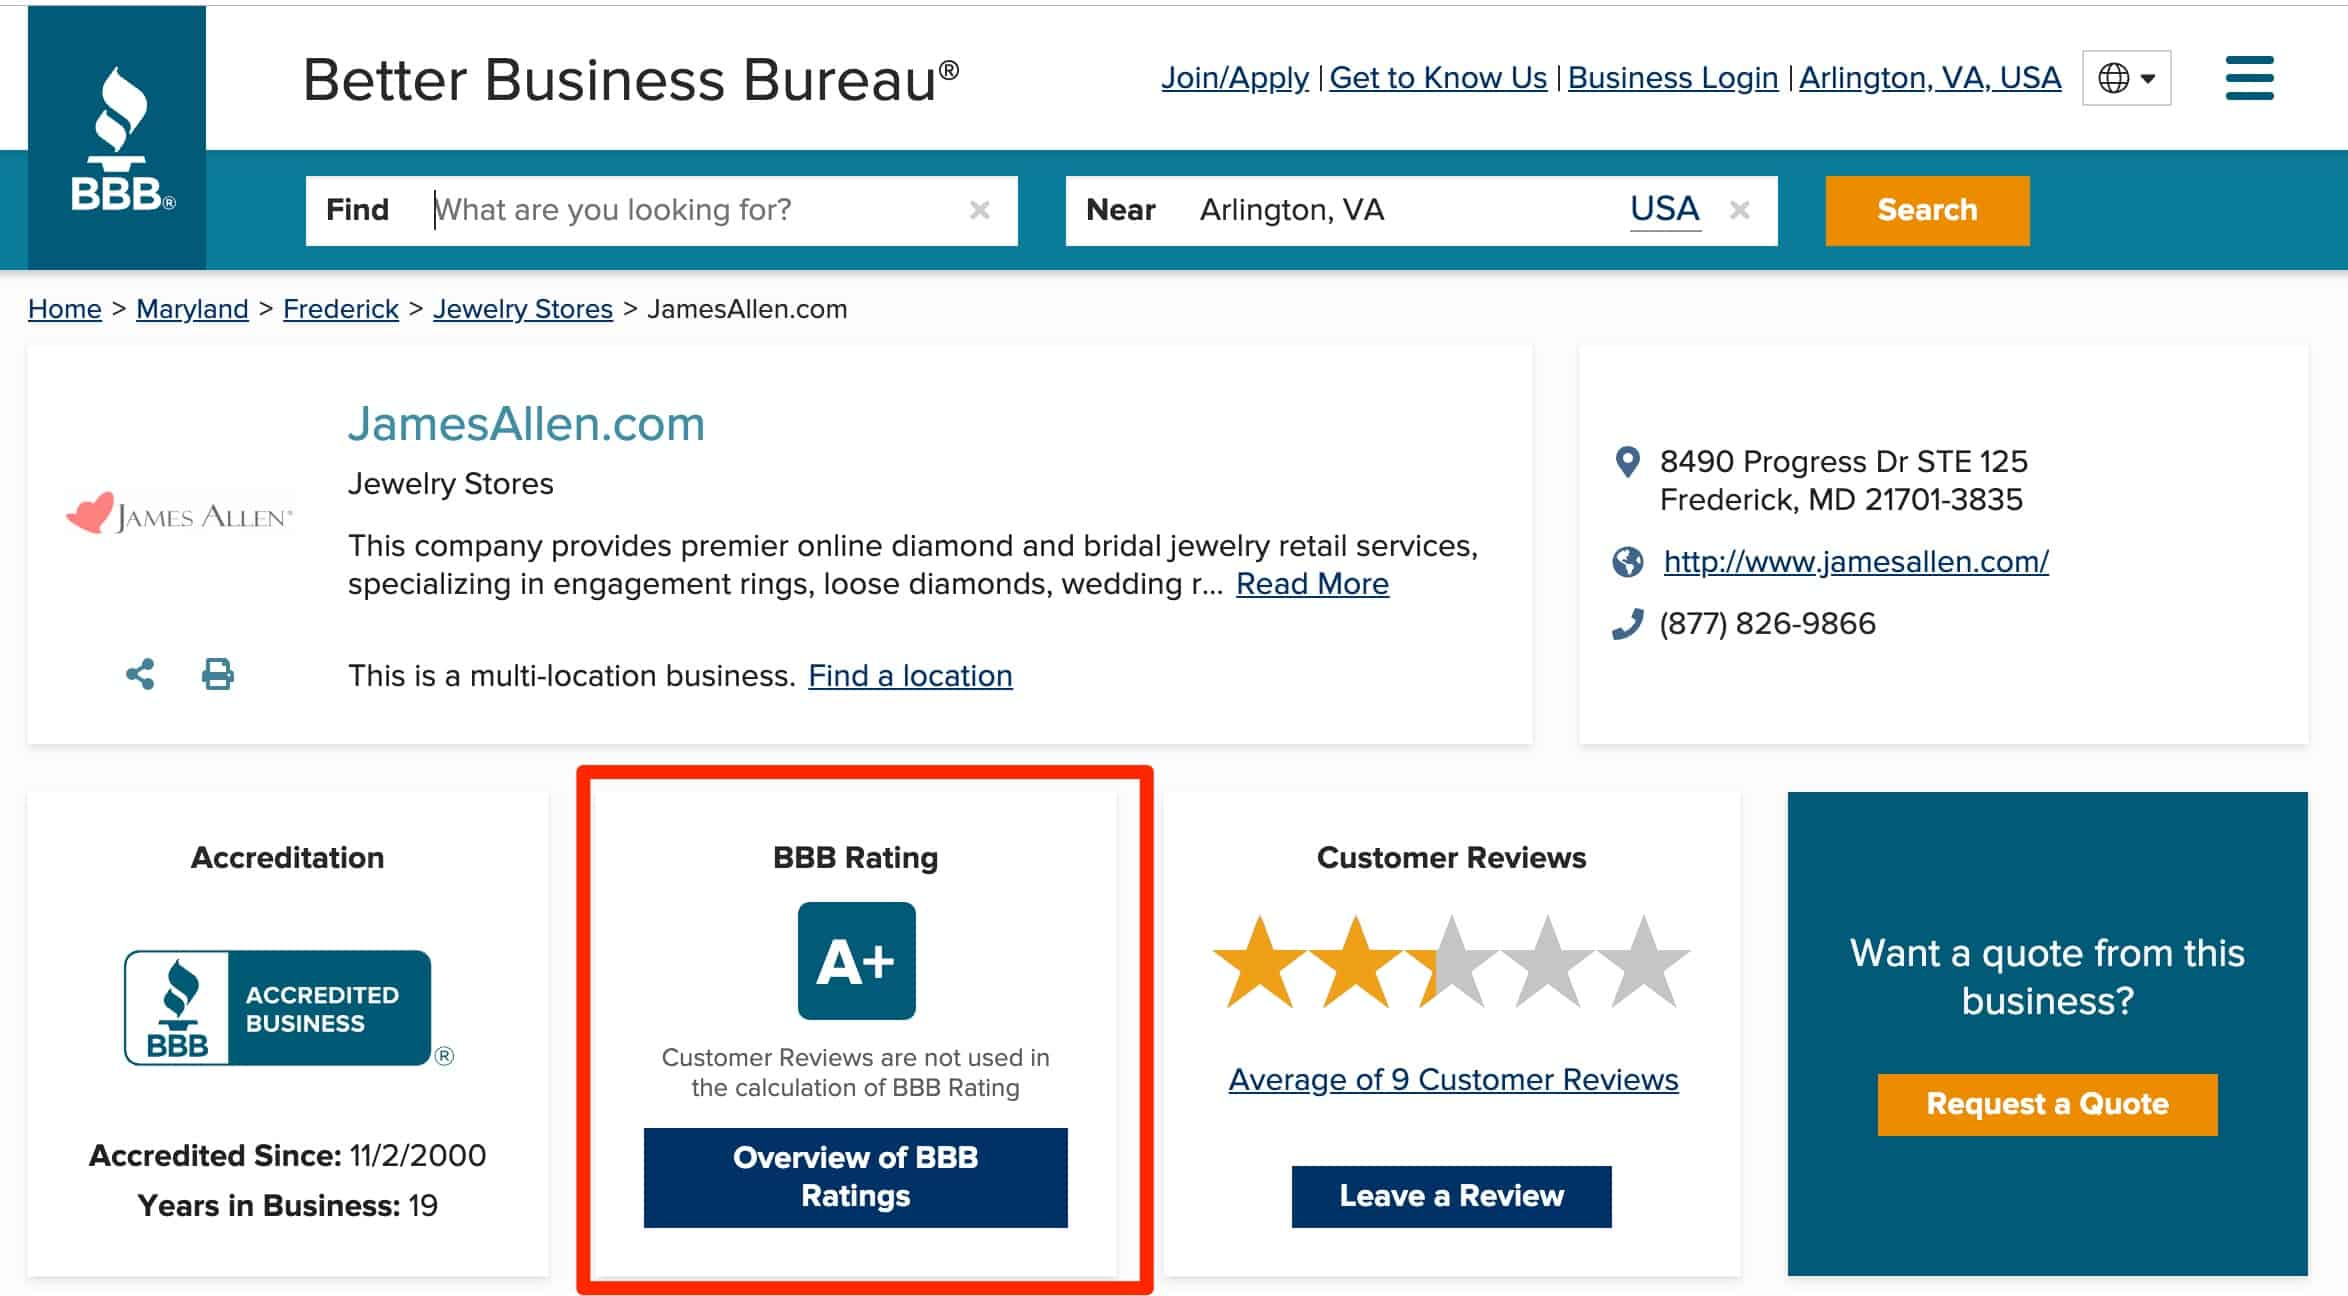 james allen better business bureau